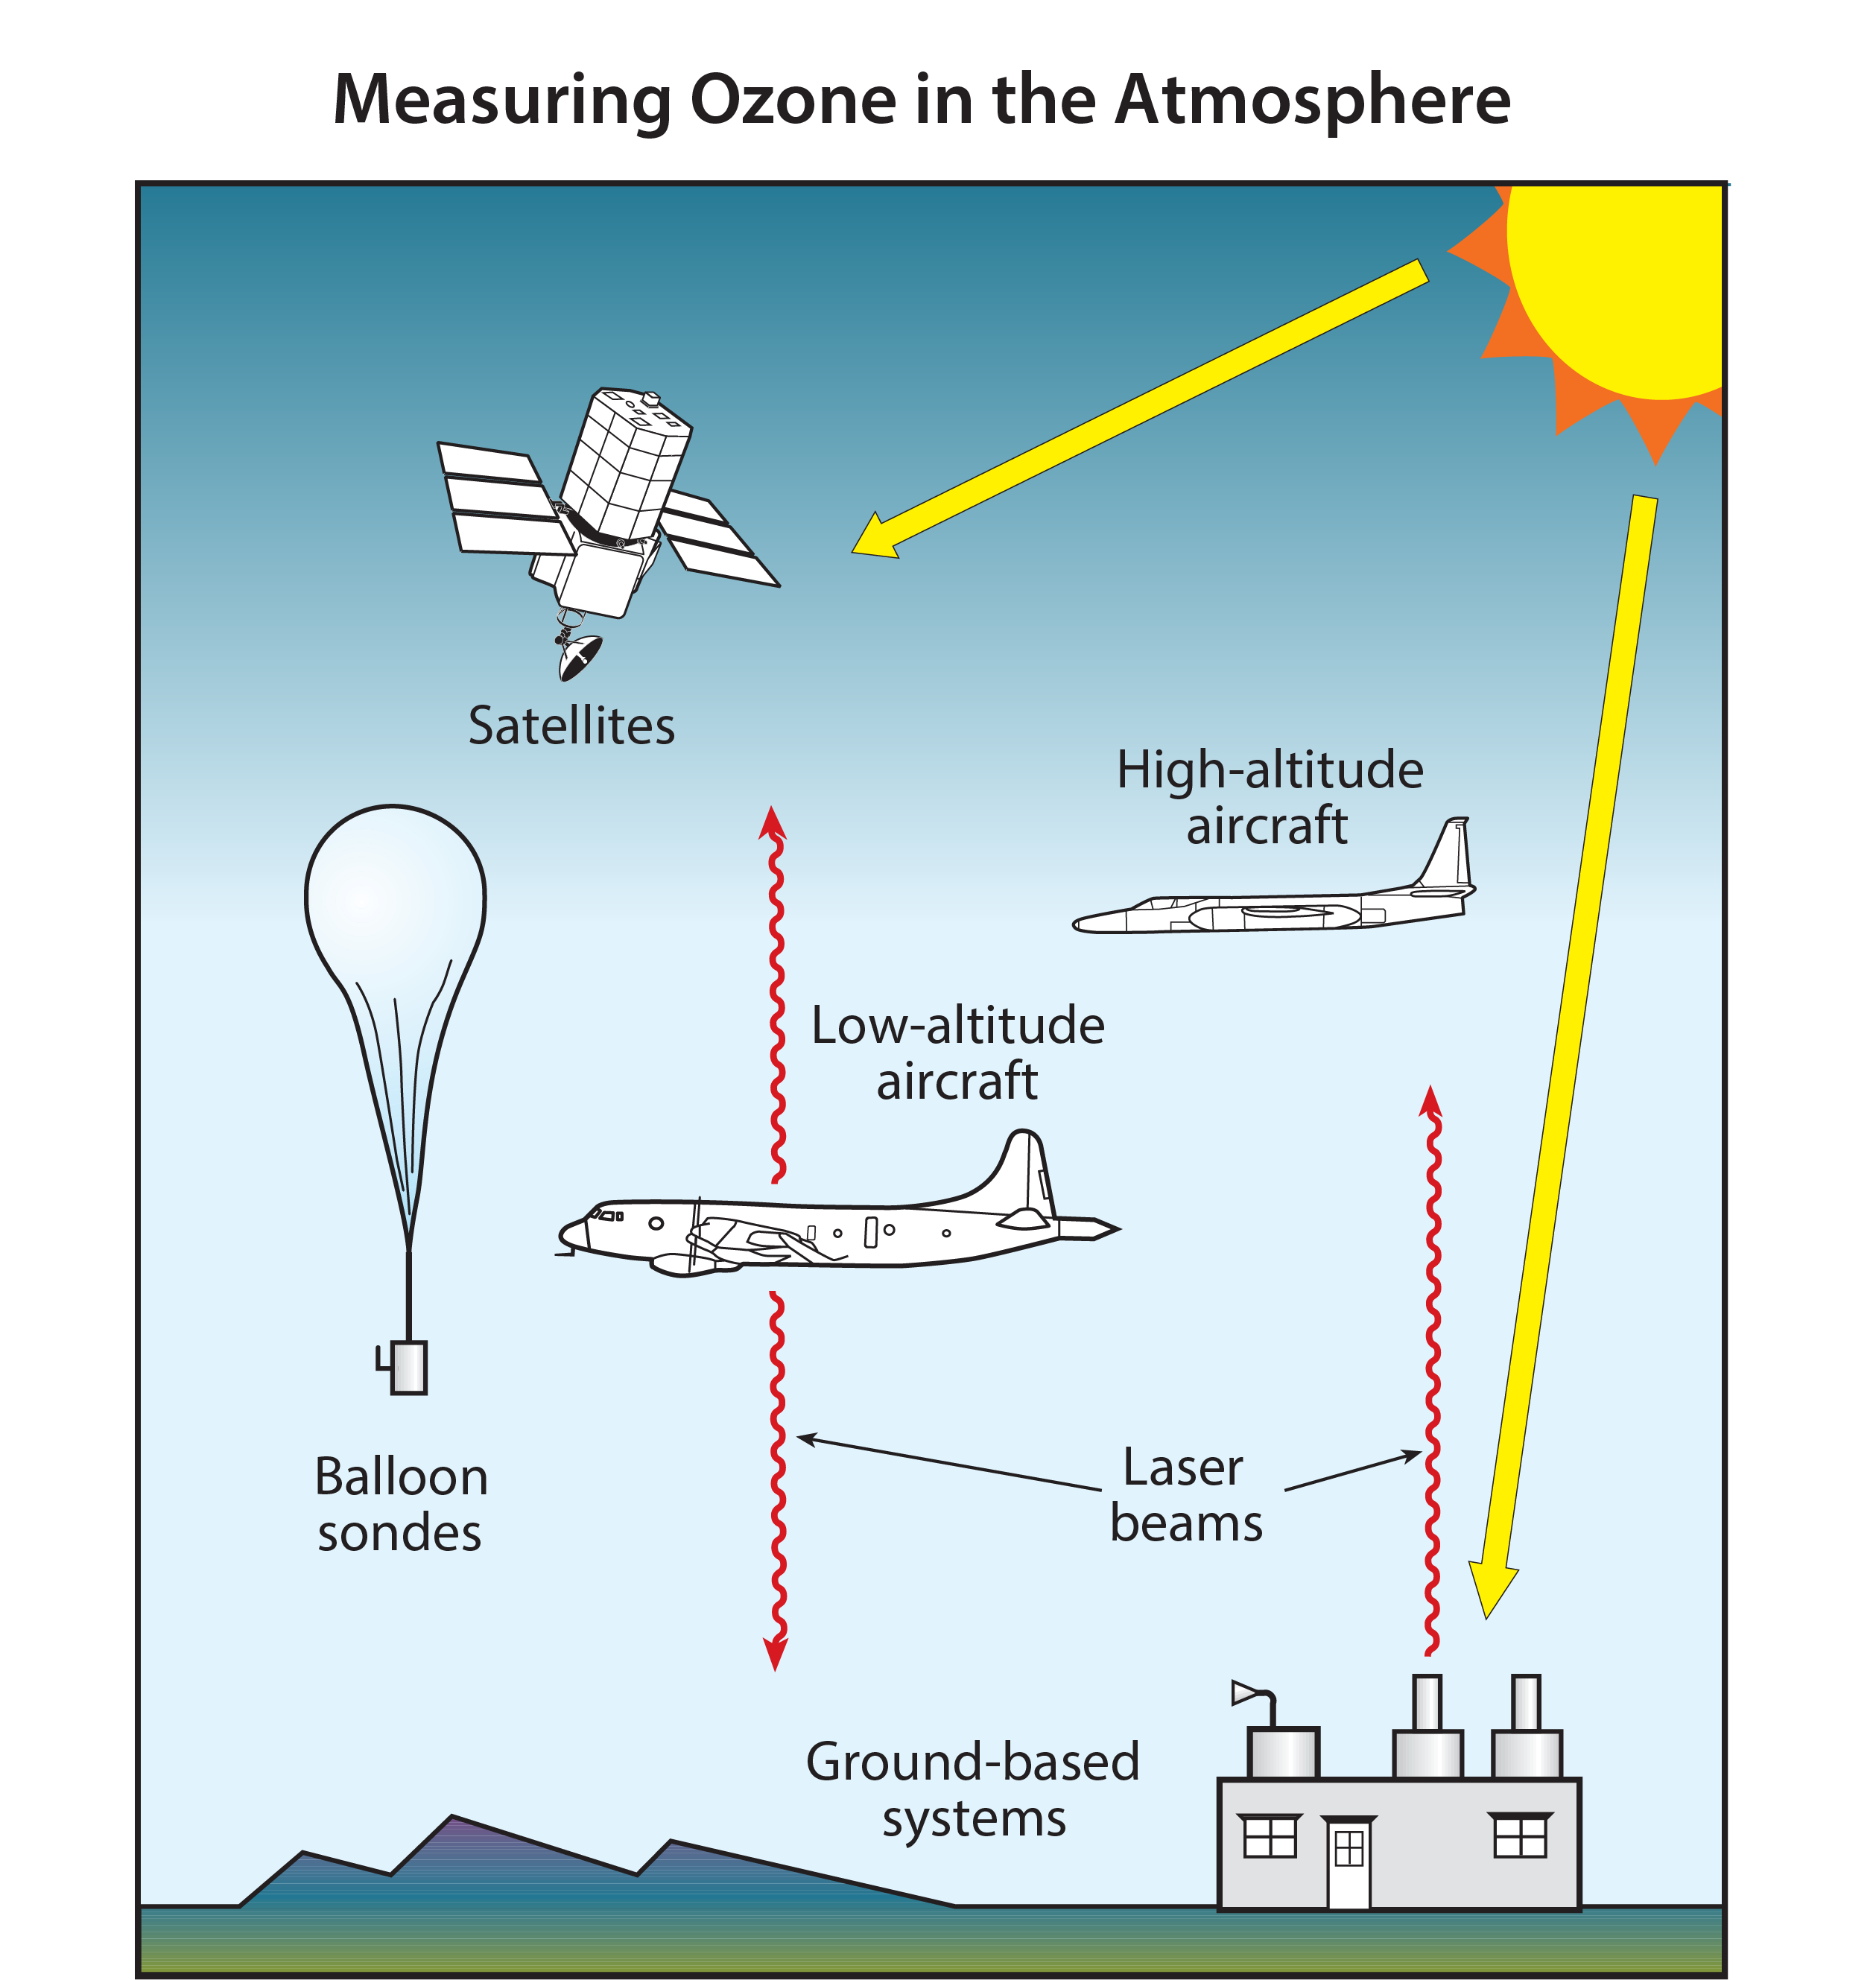 Measuring Ozone in the Atmosphere